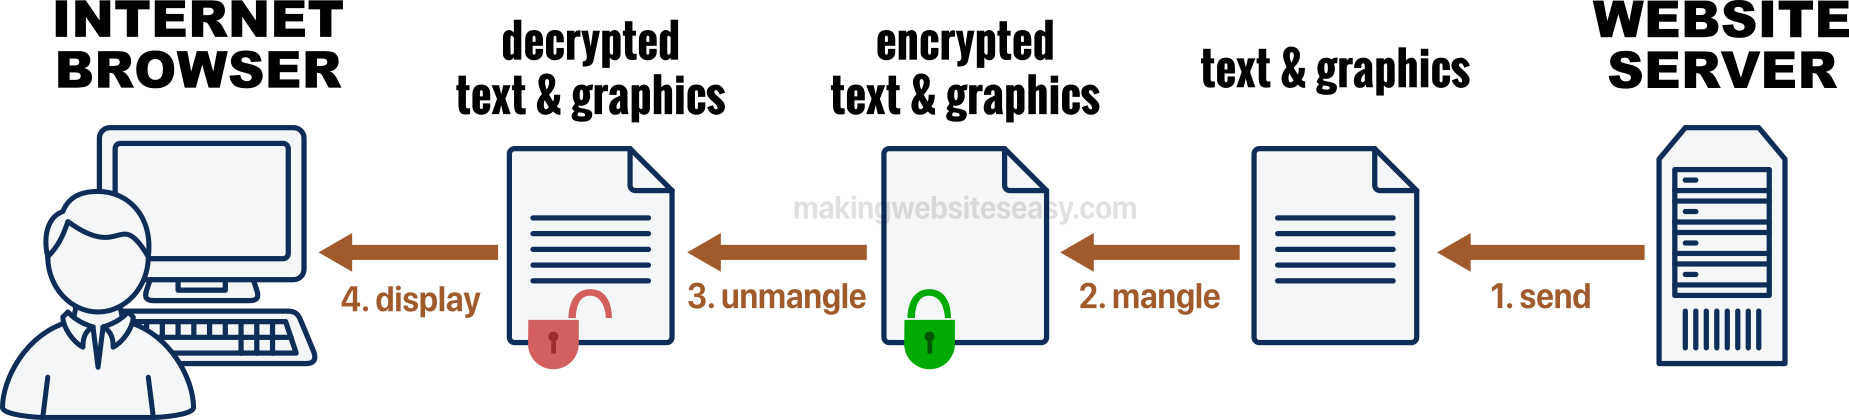 Web page information such as text and graphics can be sent securely over https.